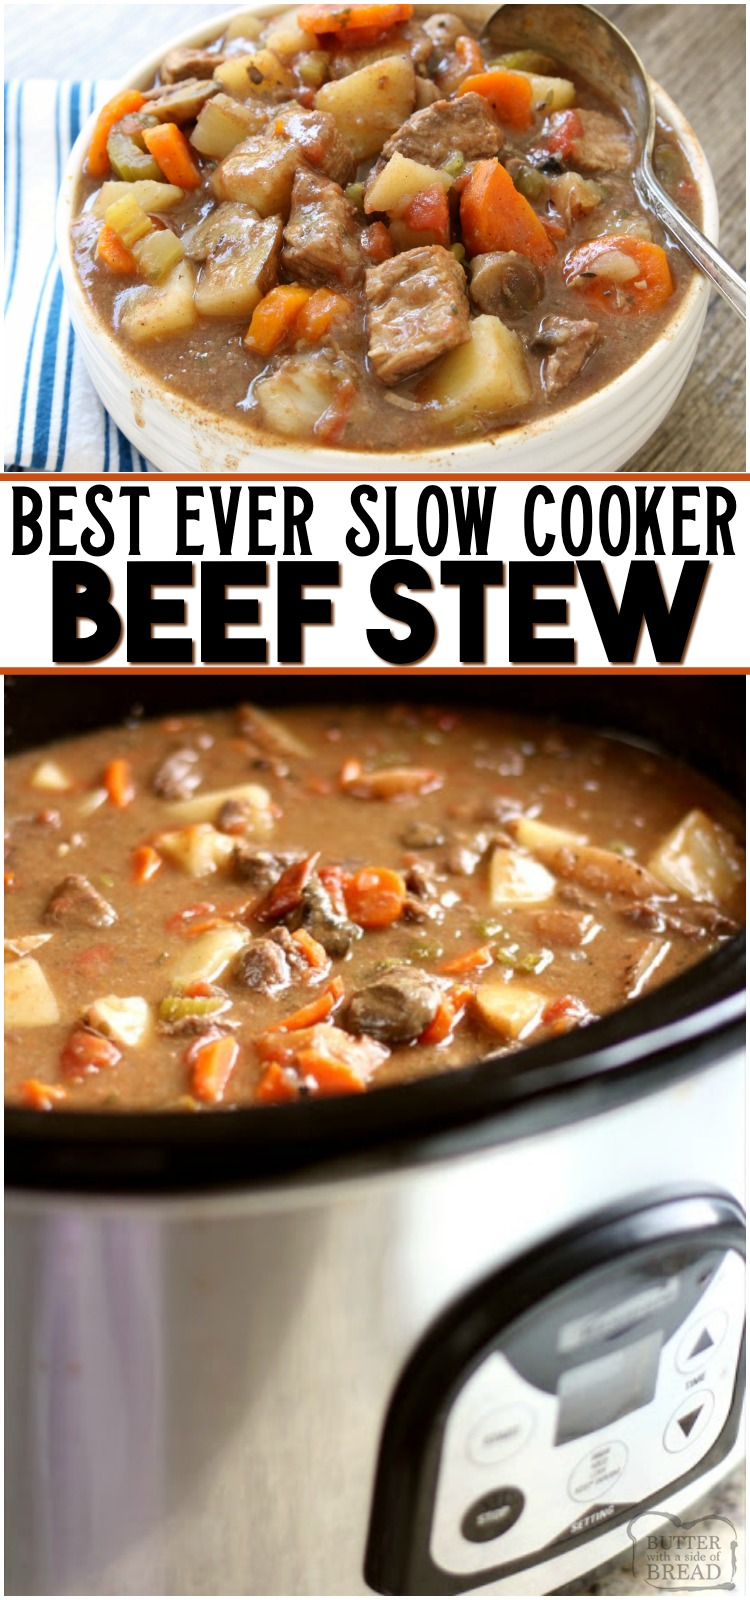 35 Slow Cooker Beef Recipes - Crock Pot Cookbook Makes Beef Stew, Roast or Ground Meals Easy